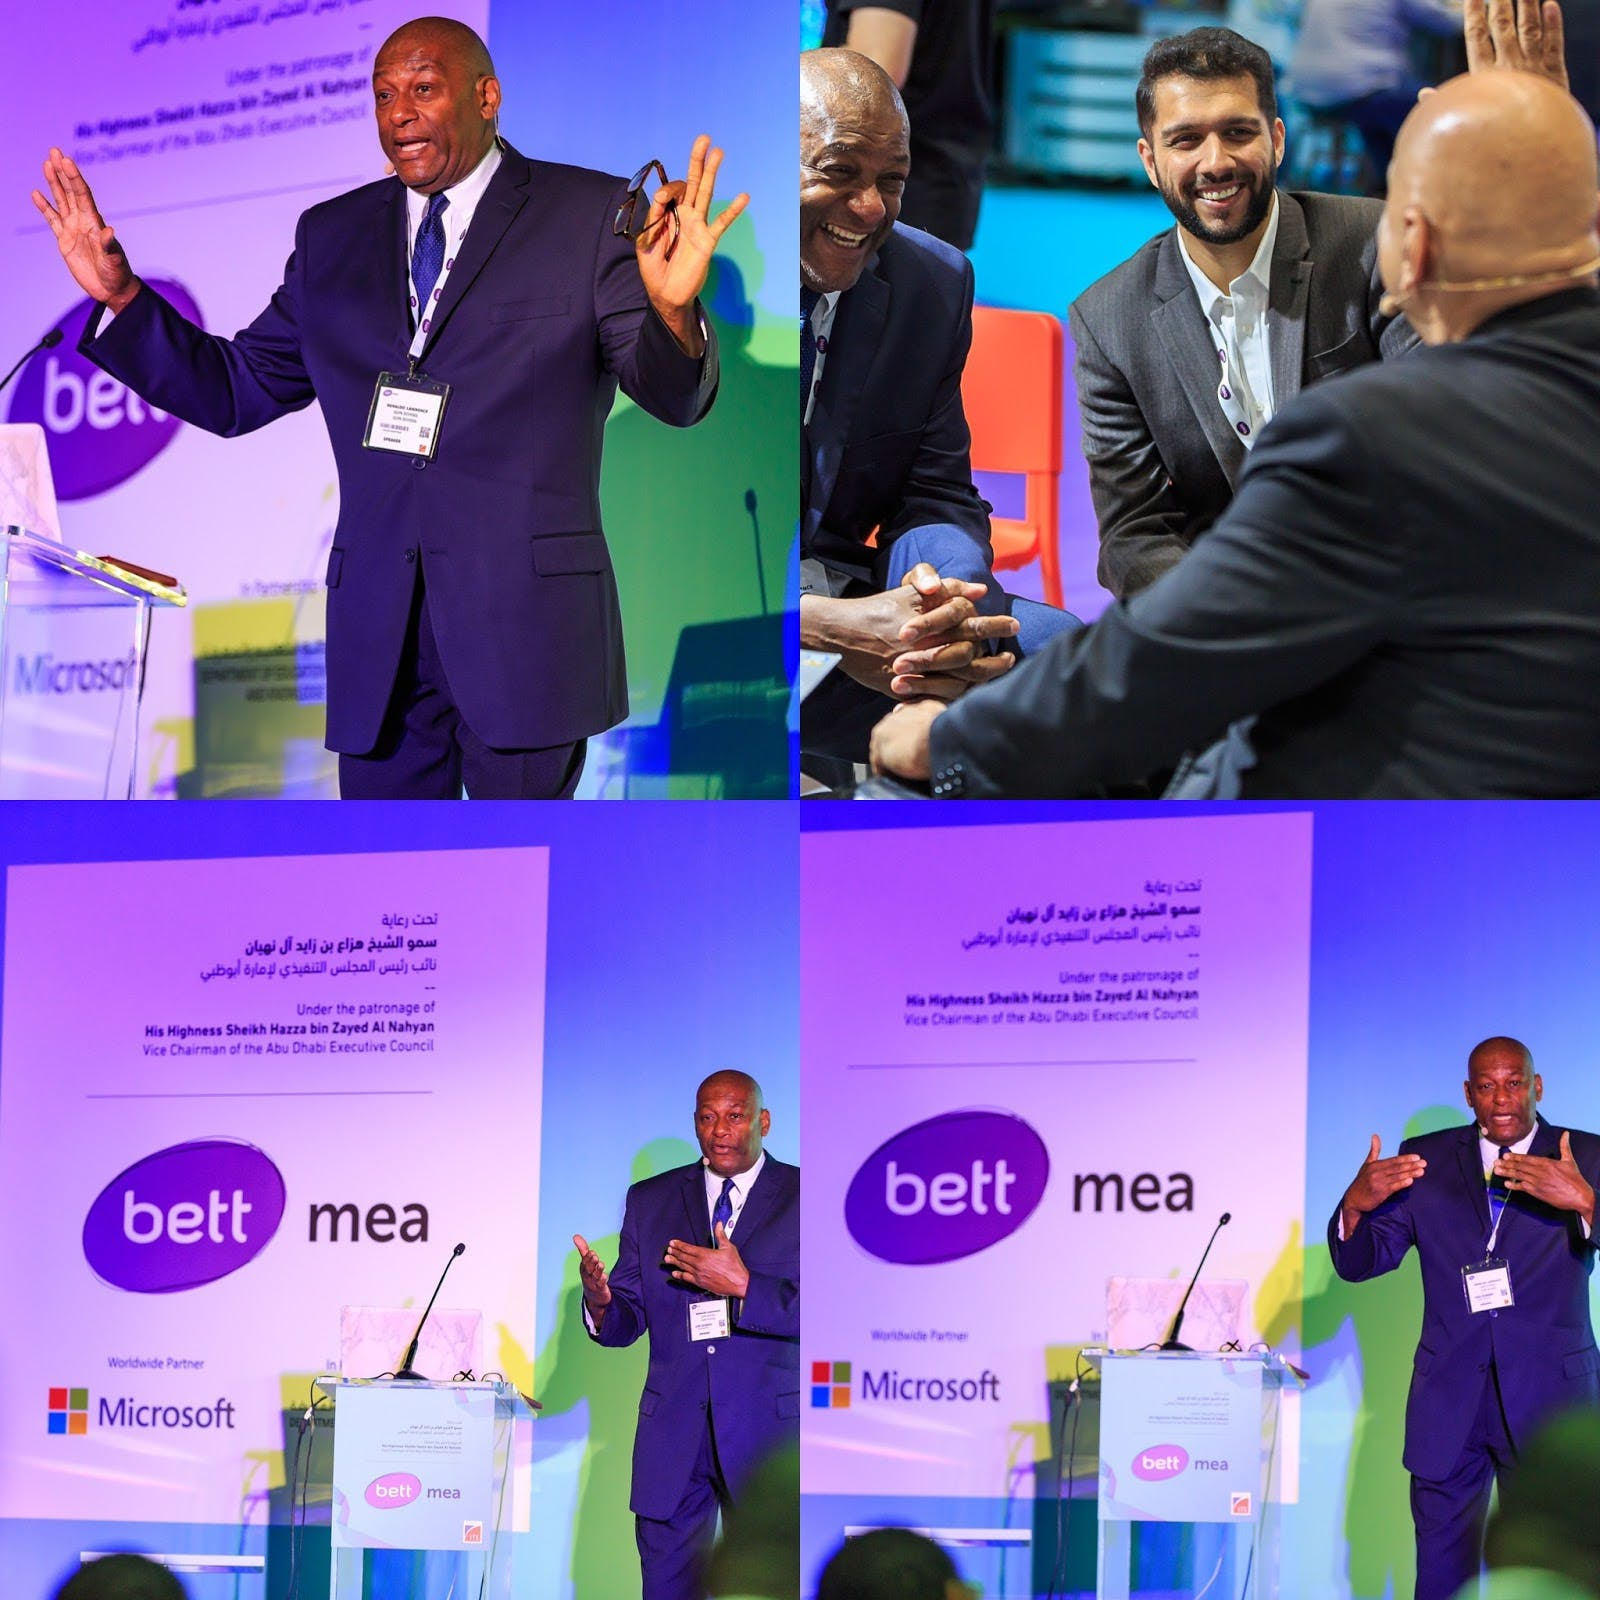 an image of Renaldo Lawrence at bett mea